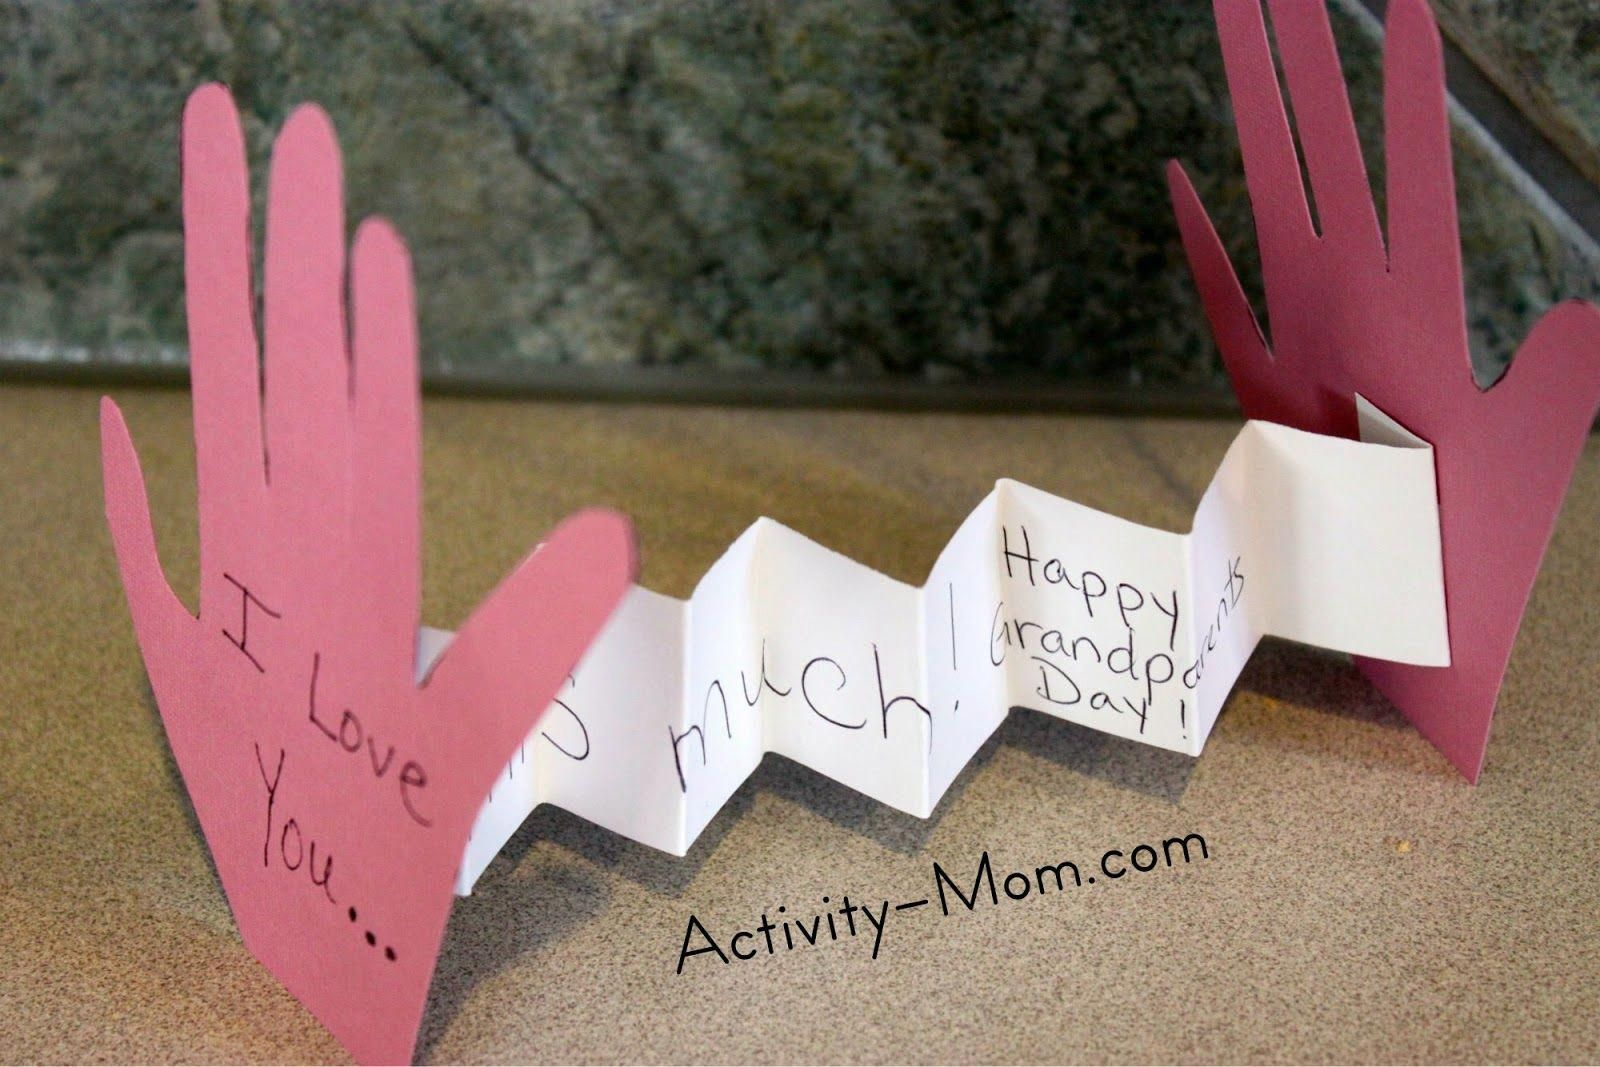 grandparents crafts and activities | Grandparents Day is nearing and we needed a cute, personalized way to ... #grandparentsdaycraftsforpreschoolers